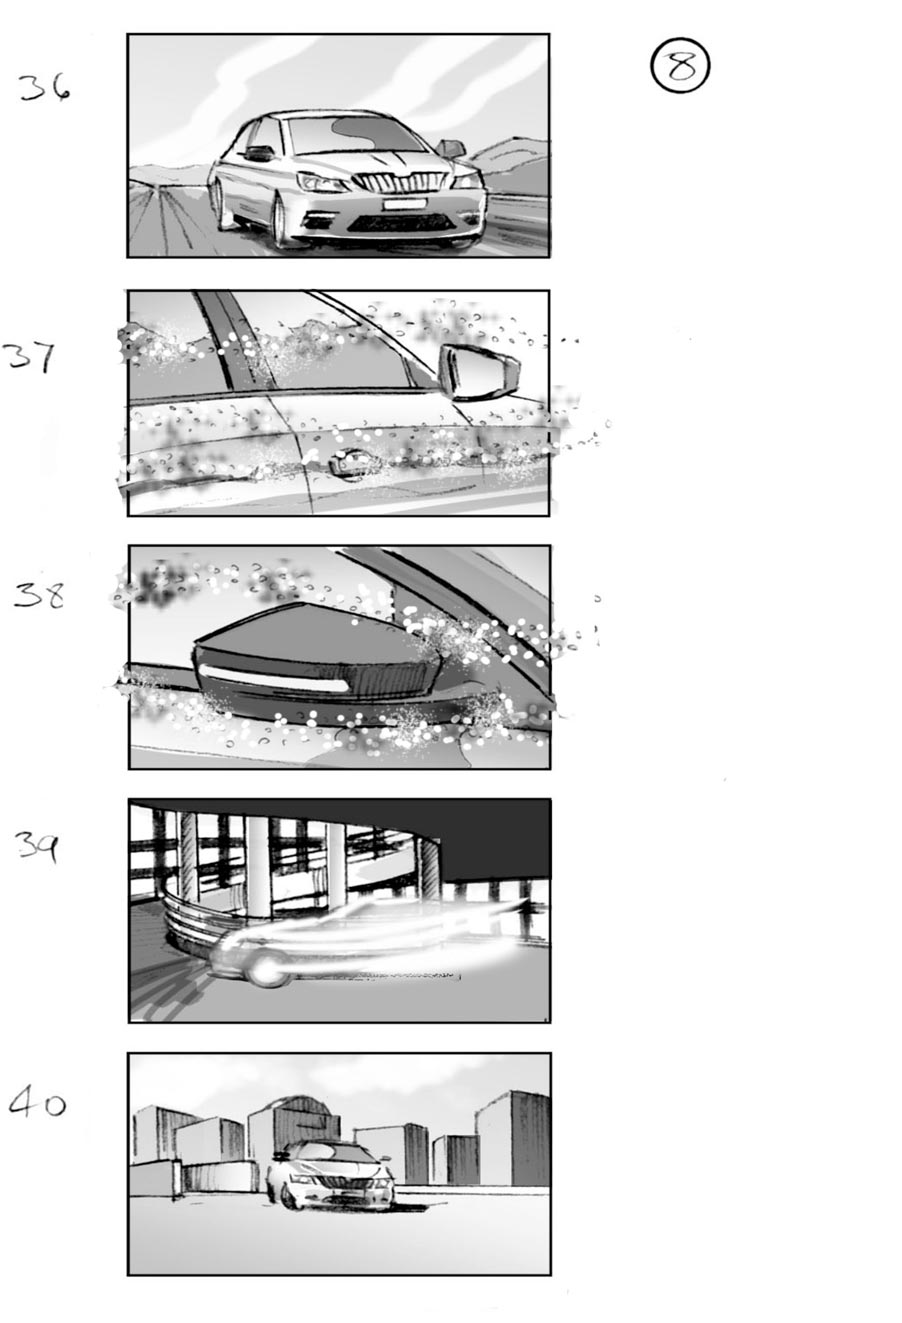 douglas ingram, storyboard art, skoda commercial